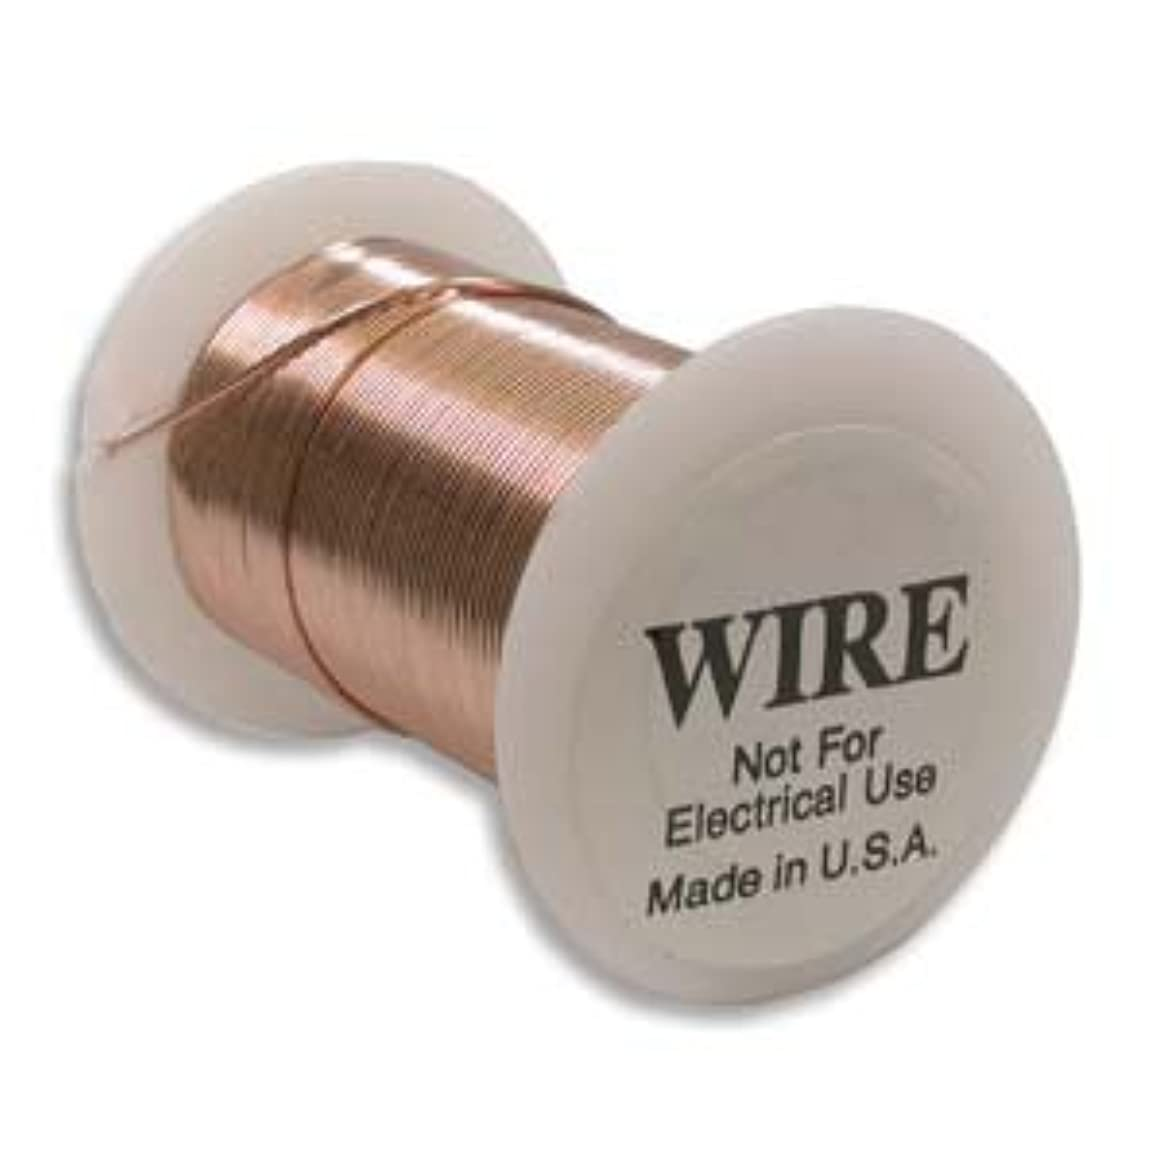 Tarnish Resistant Copper Wire 20 Gauge 15 Yard (13.5m) Copper Color 42684